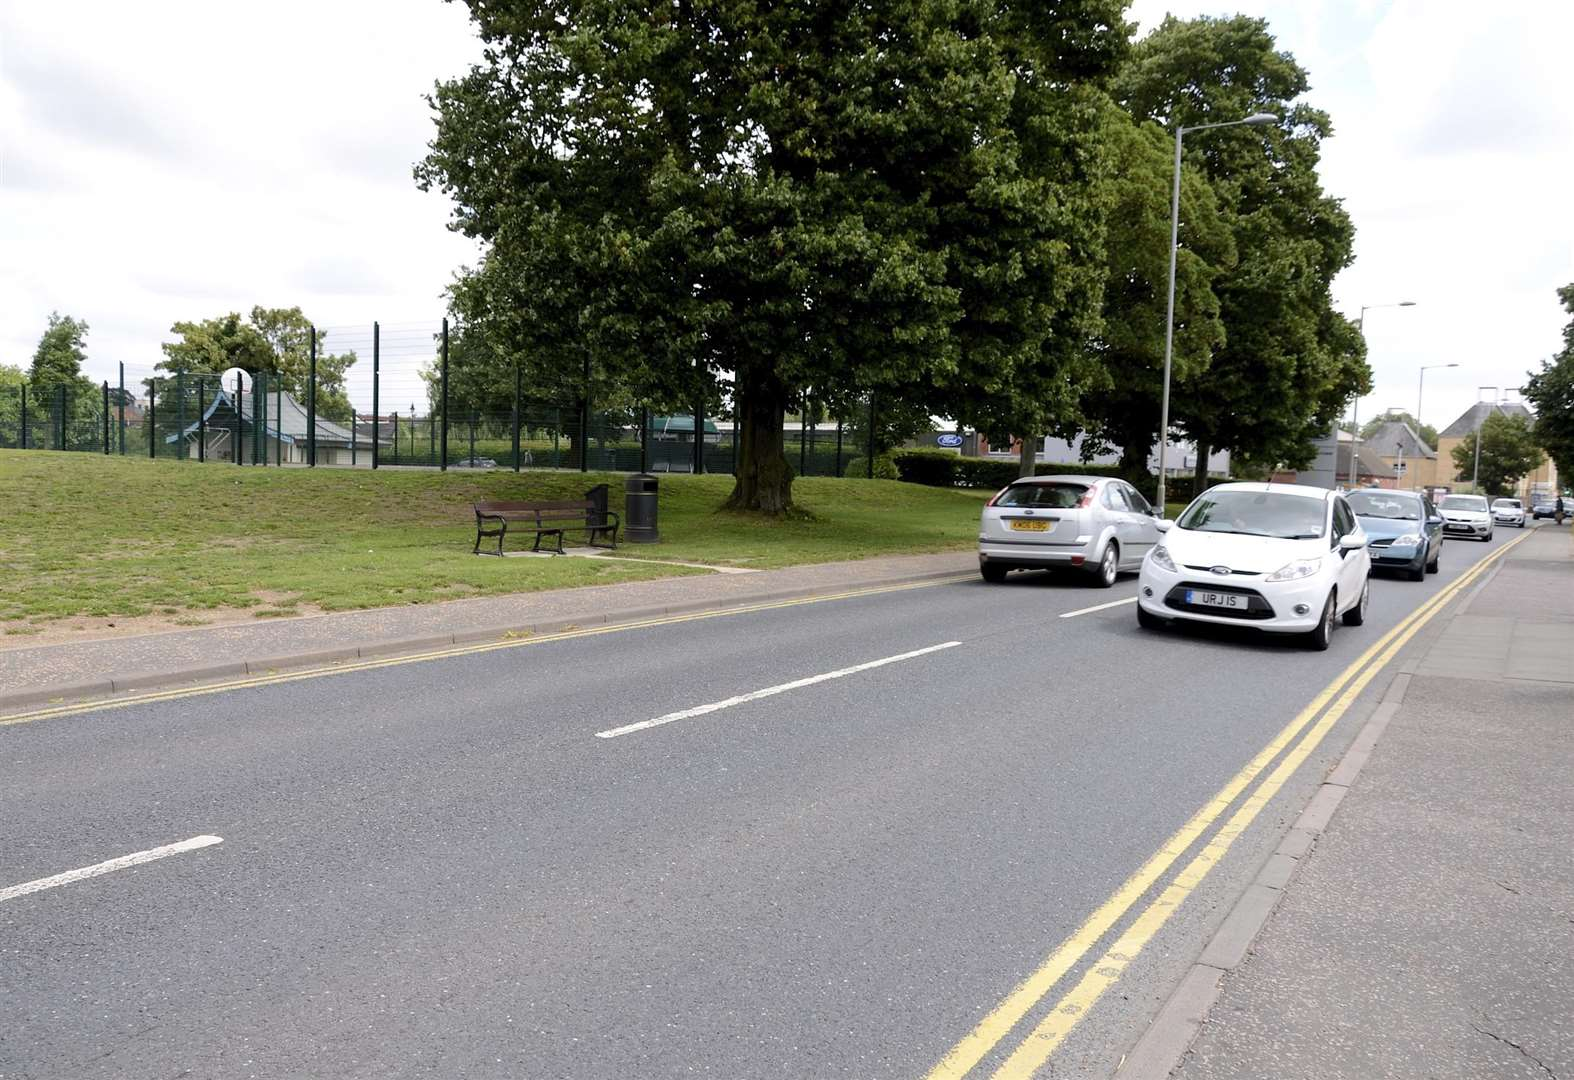 Drainage improvement works announced for Diss